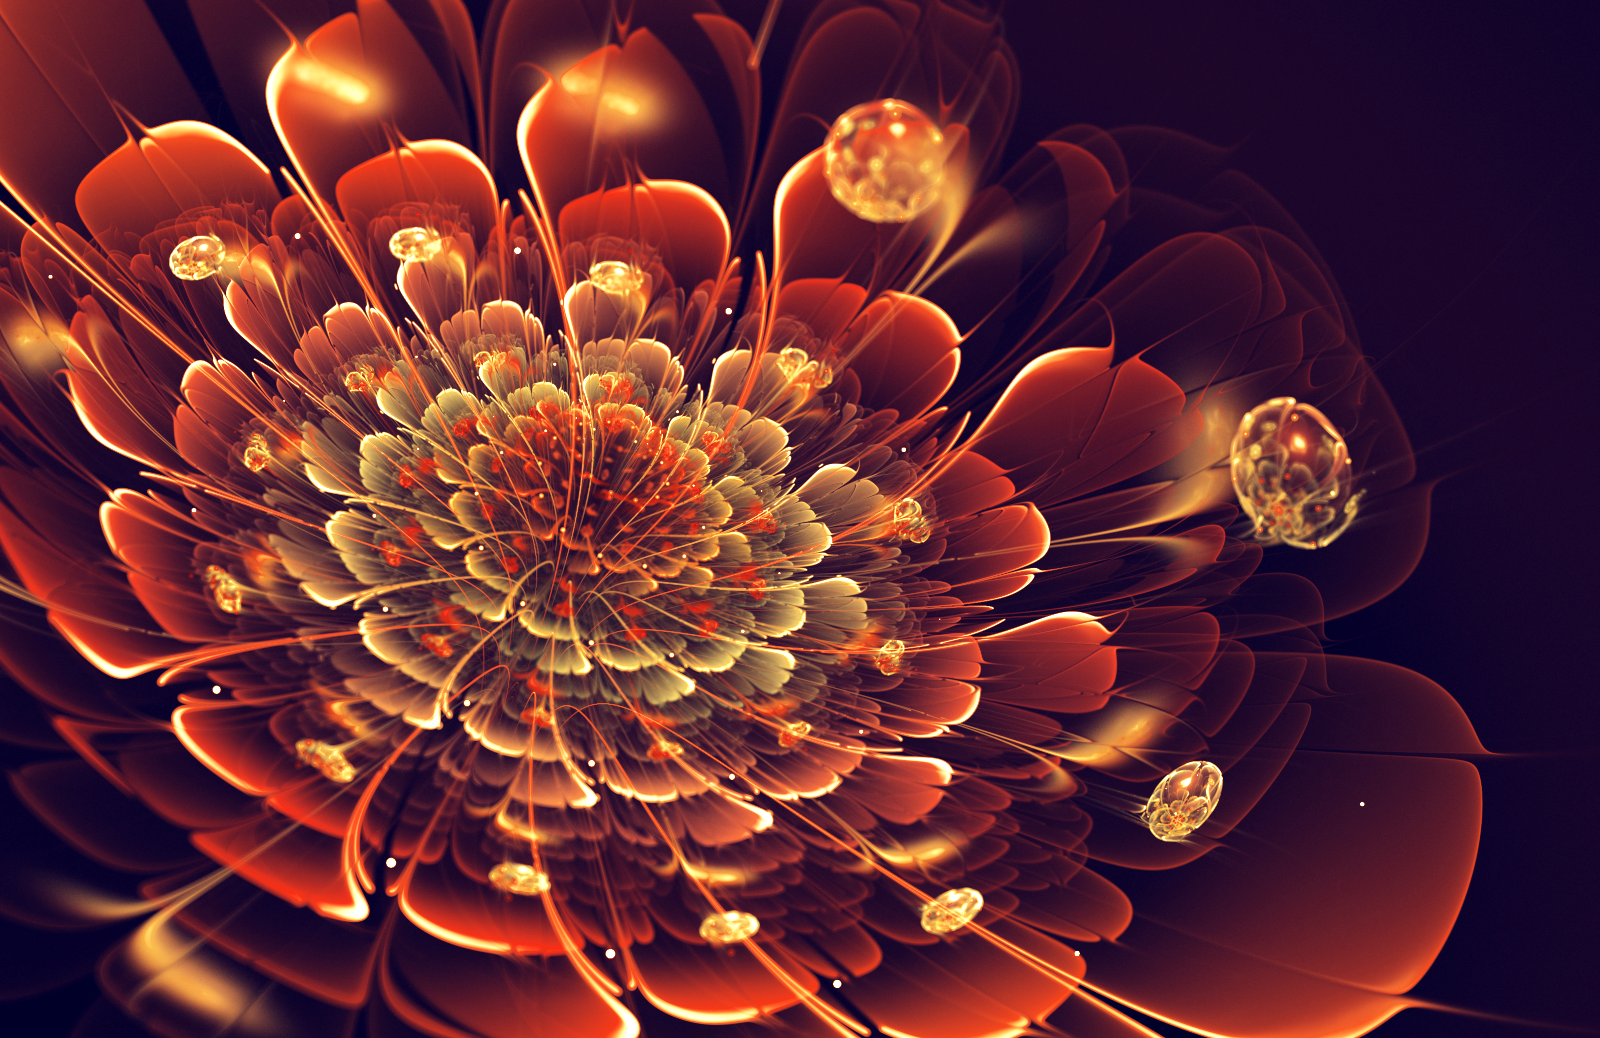 Amazing Fractal Art [15 Pics]  I Like To Waste My Time